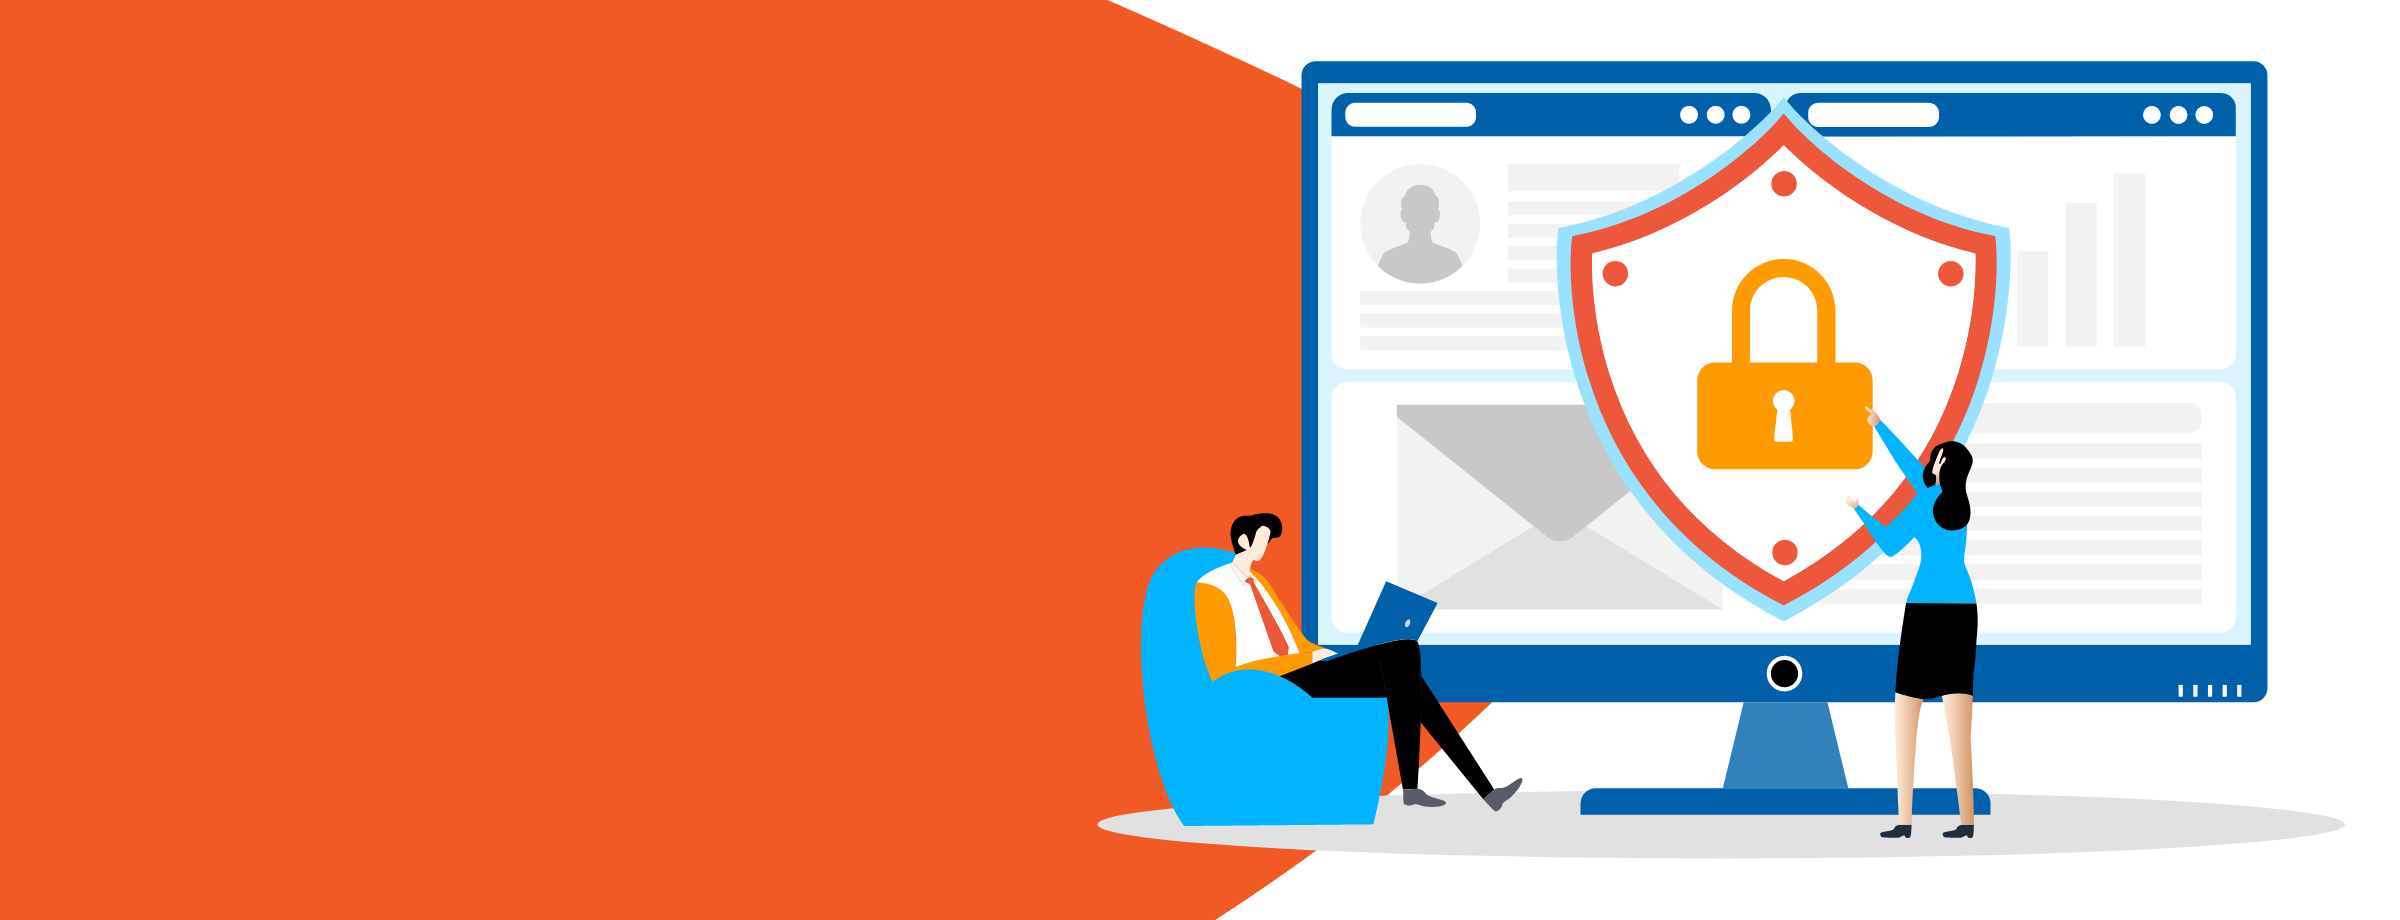 How safe is your business? Use a security assessment to find out